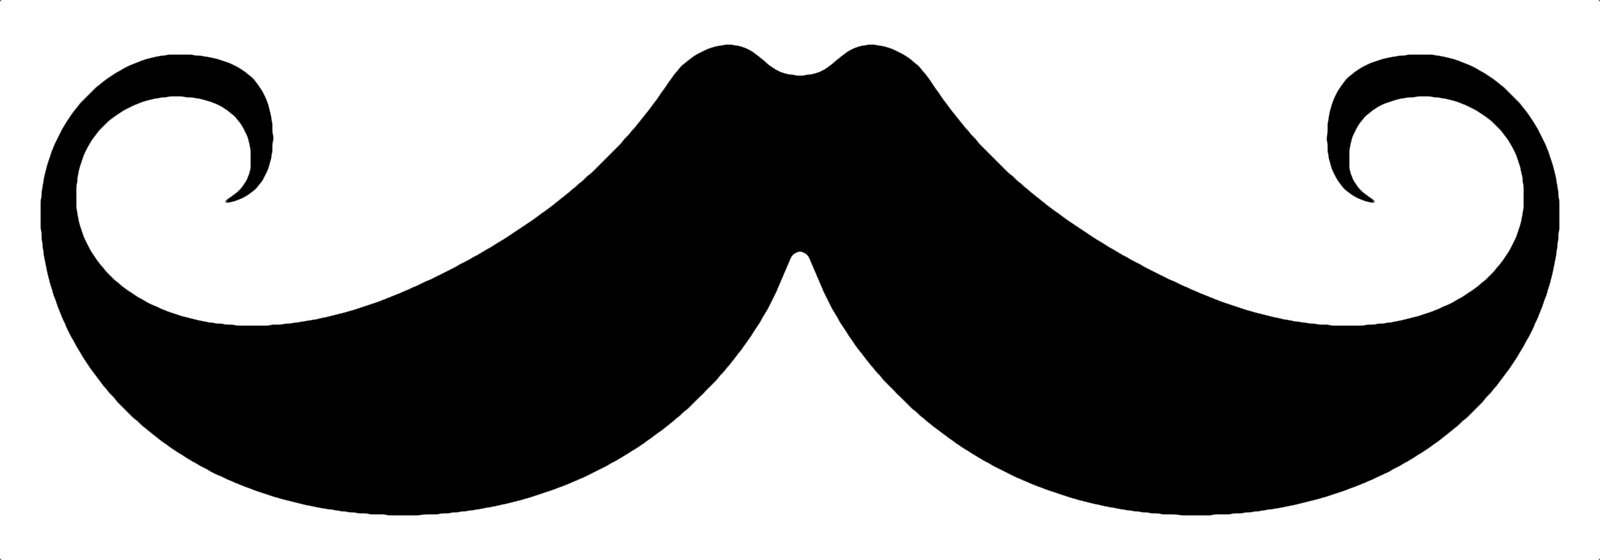 Mexican Mustaches Clipart